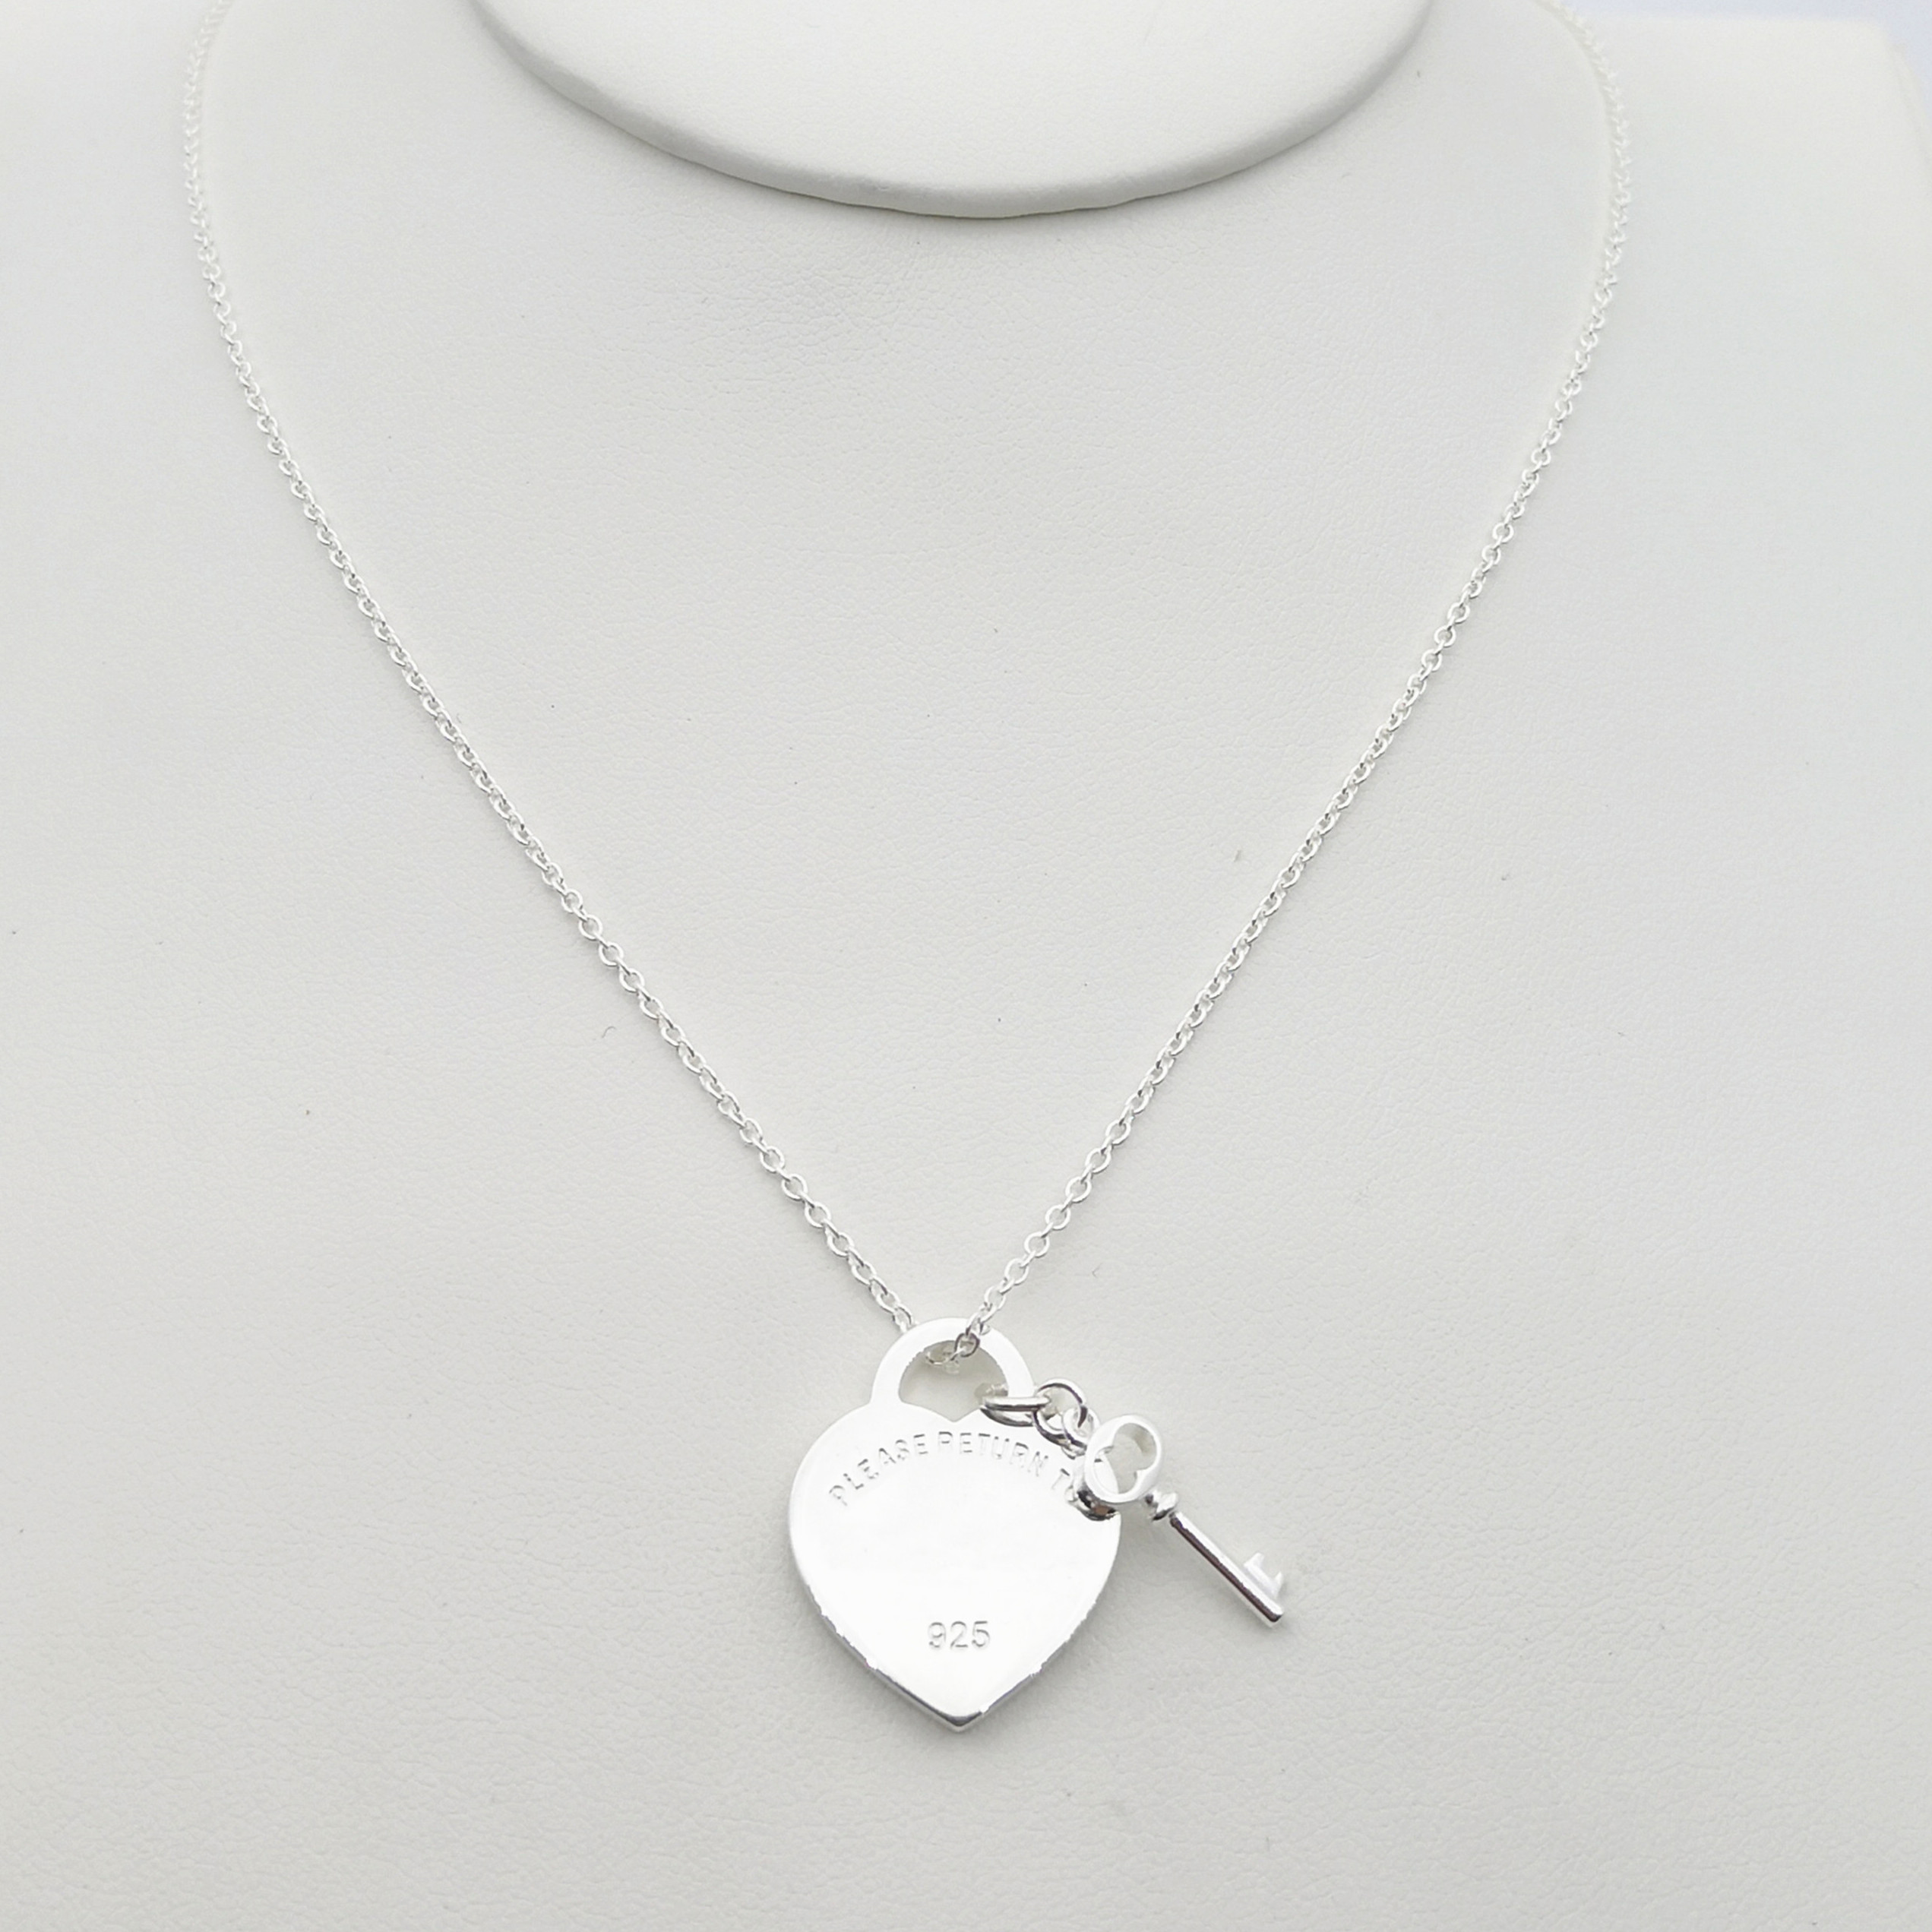 1: 1 sterling silver 925 classic popular silver heart shaped silver key pendant necklace jewelry holiday gift